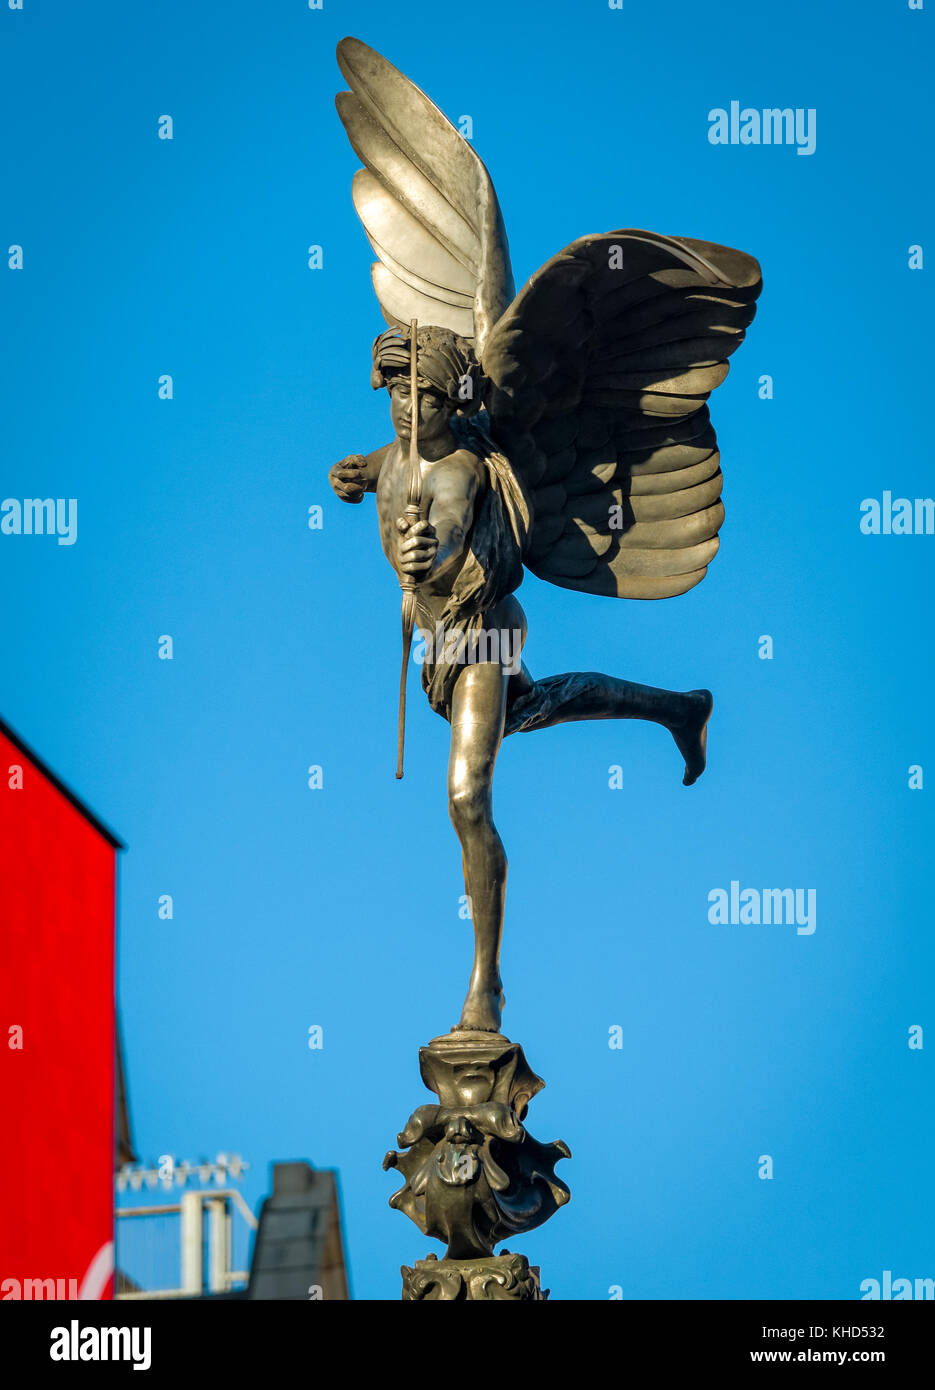 Statue of Anteros at Shaftesbury Memorial Fountain, Piccadilly Circus, London. The Statue was erected in 1892. - Stock Image